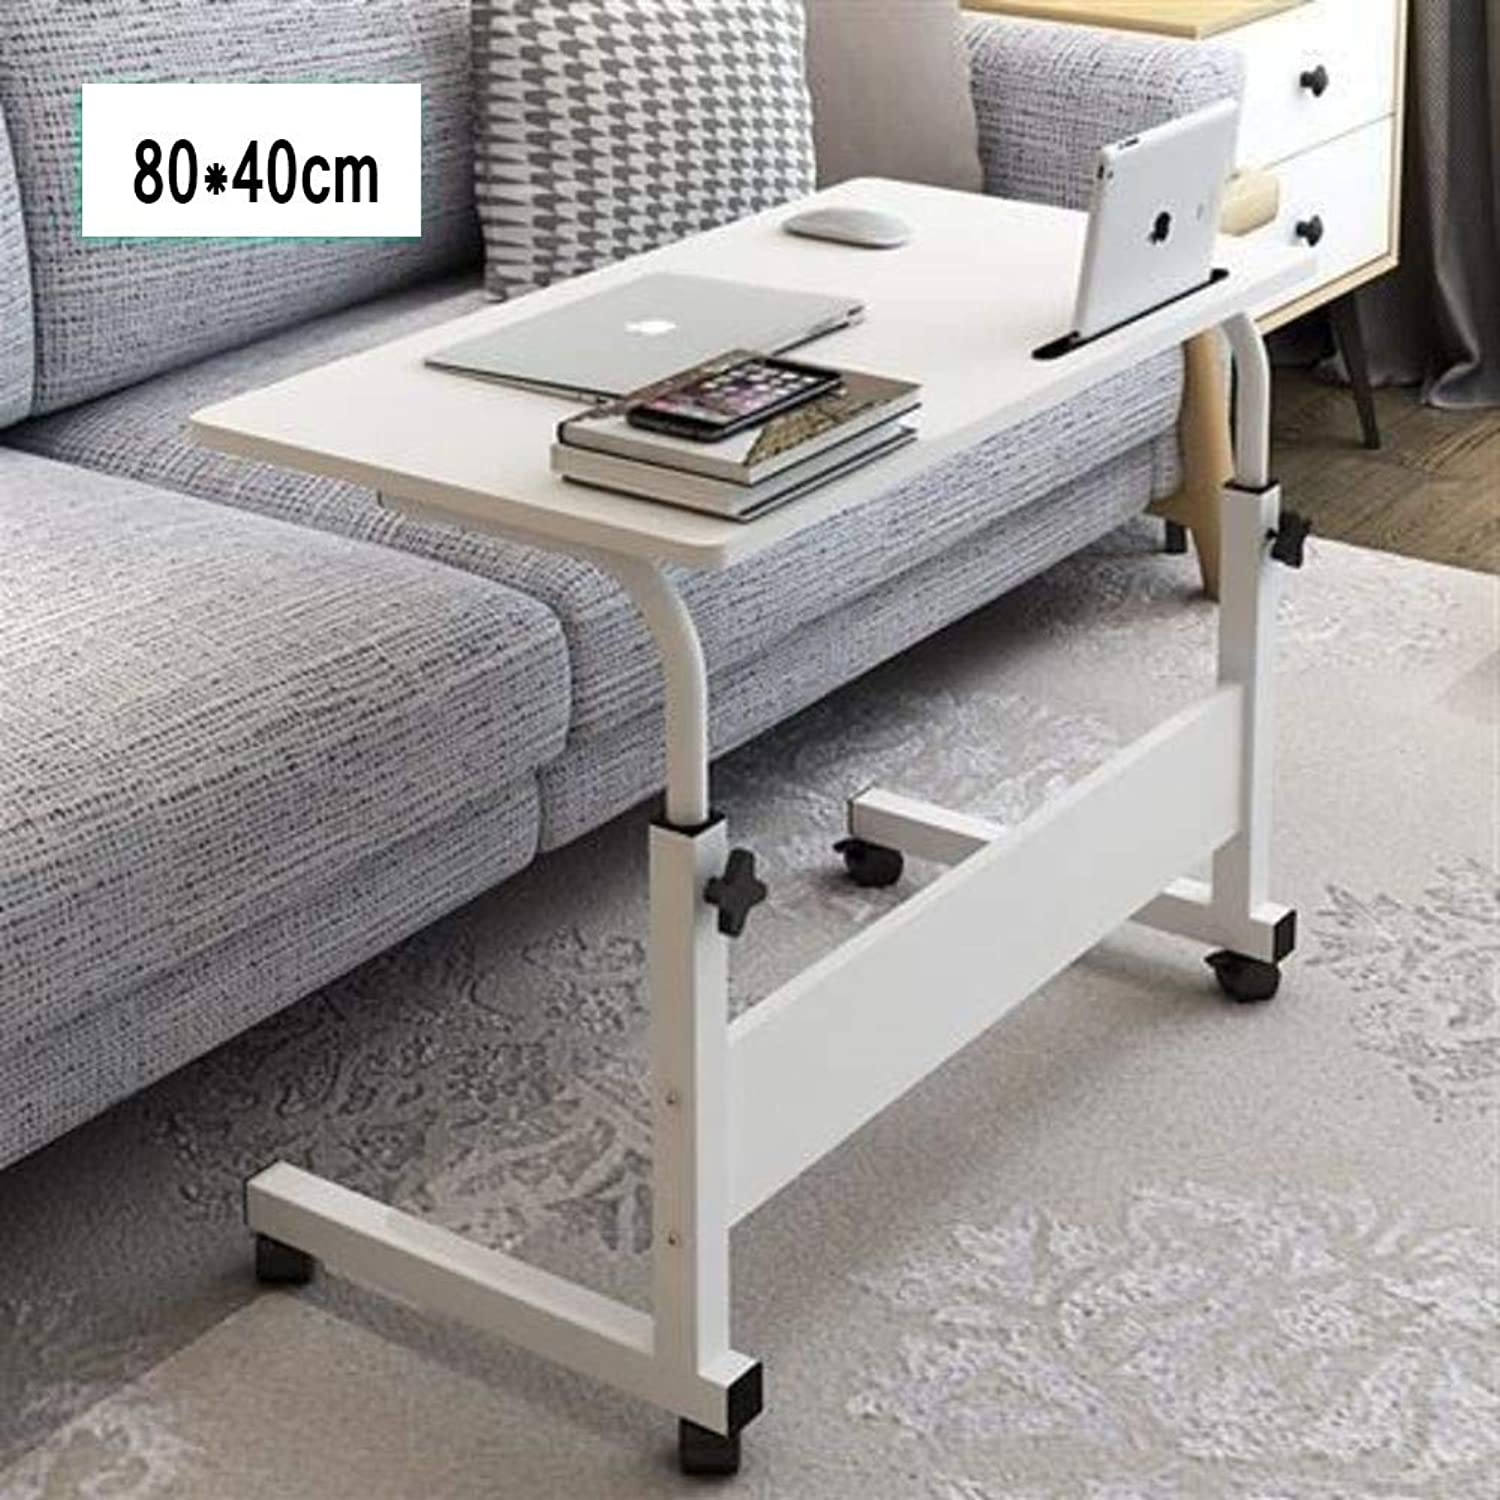 Bedside Computer Desk 1,Mobile Laptop Computer Table,Adjustable Height Desktop Table Stand with Wheels Slot Over Bed Hospital-b 80x40cm(31x16inch)